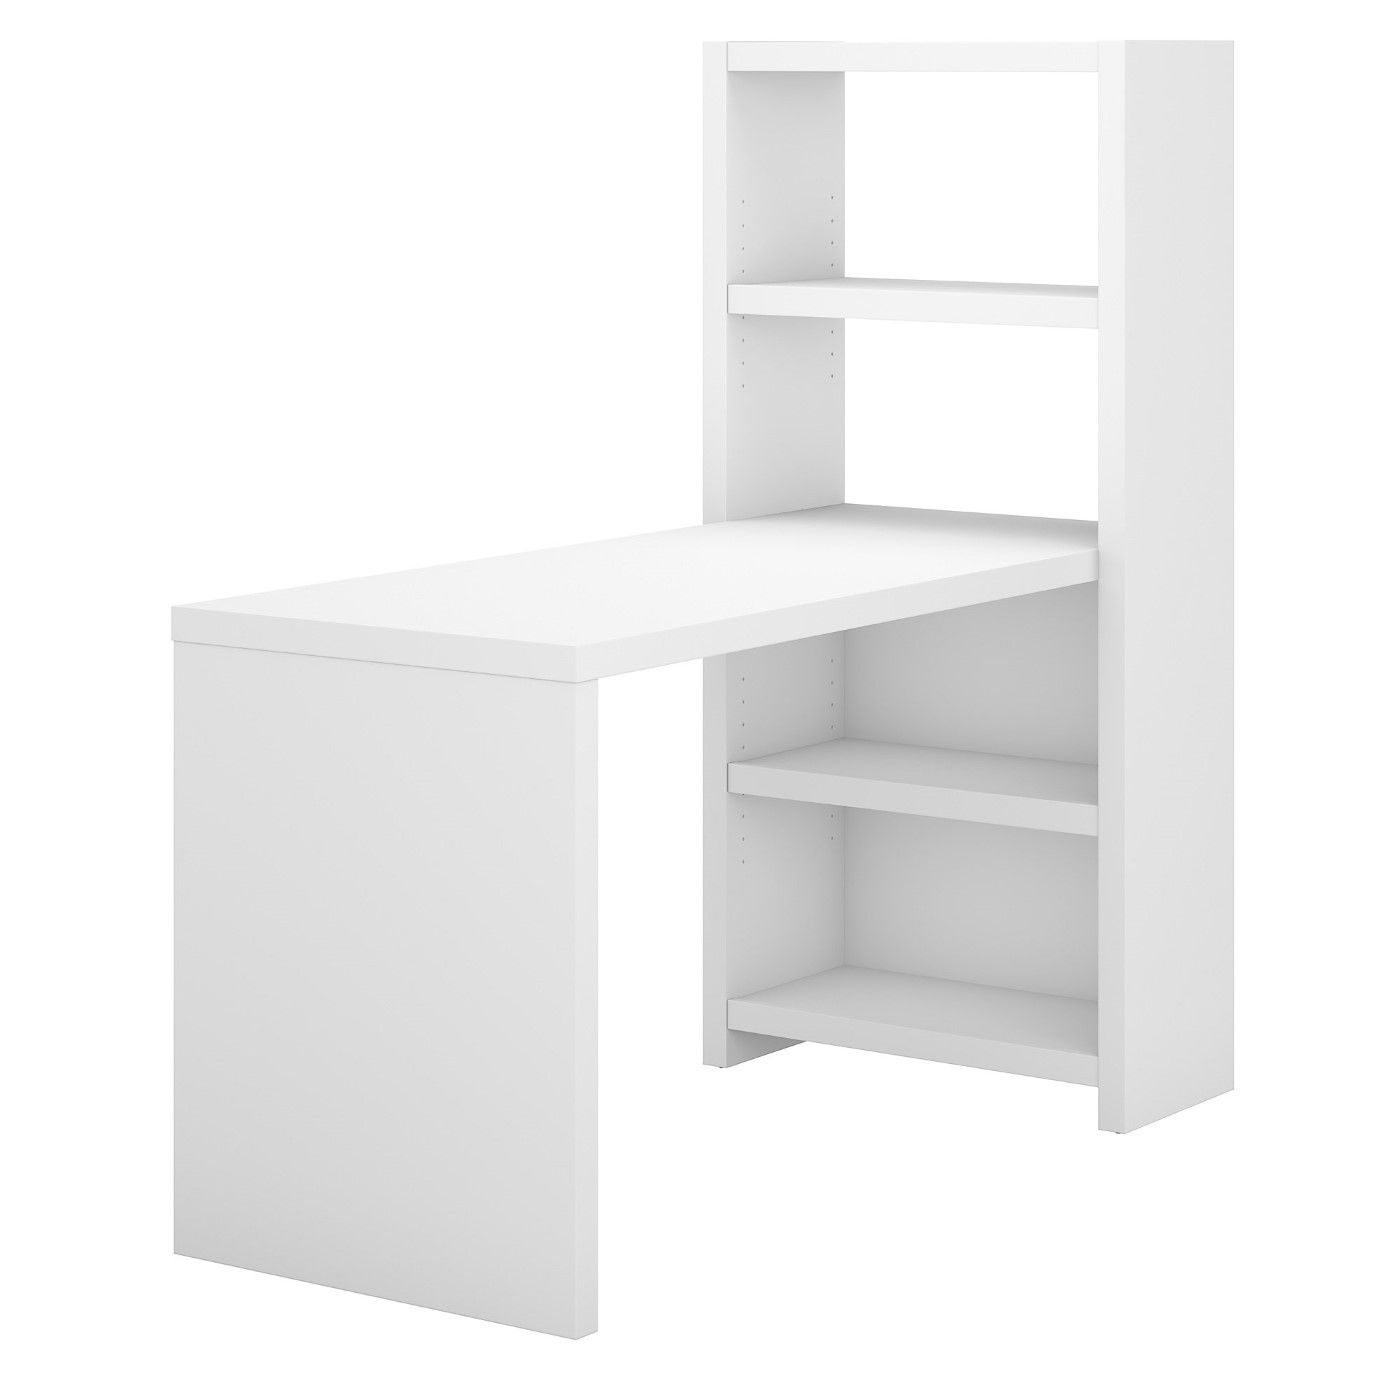 OFFICE BY KATHY IRELAND® ECHO 56W CRAFT TABLE. FREE SHIPPING